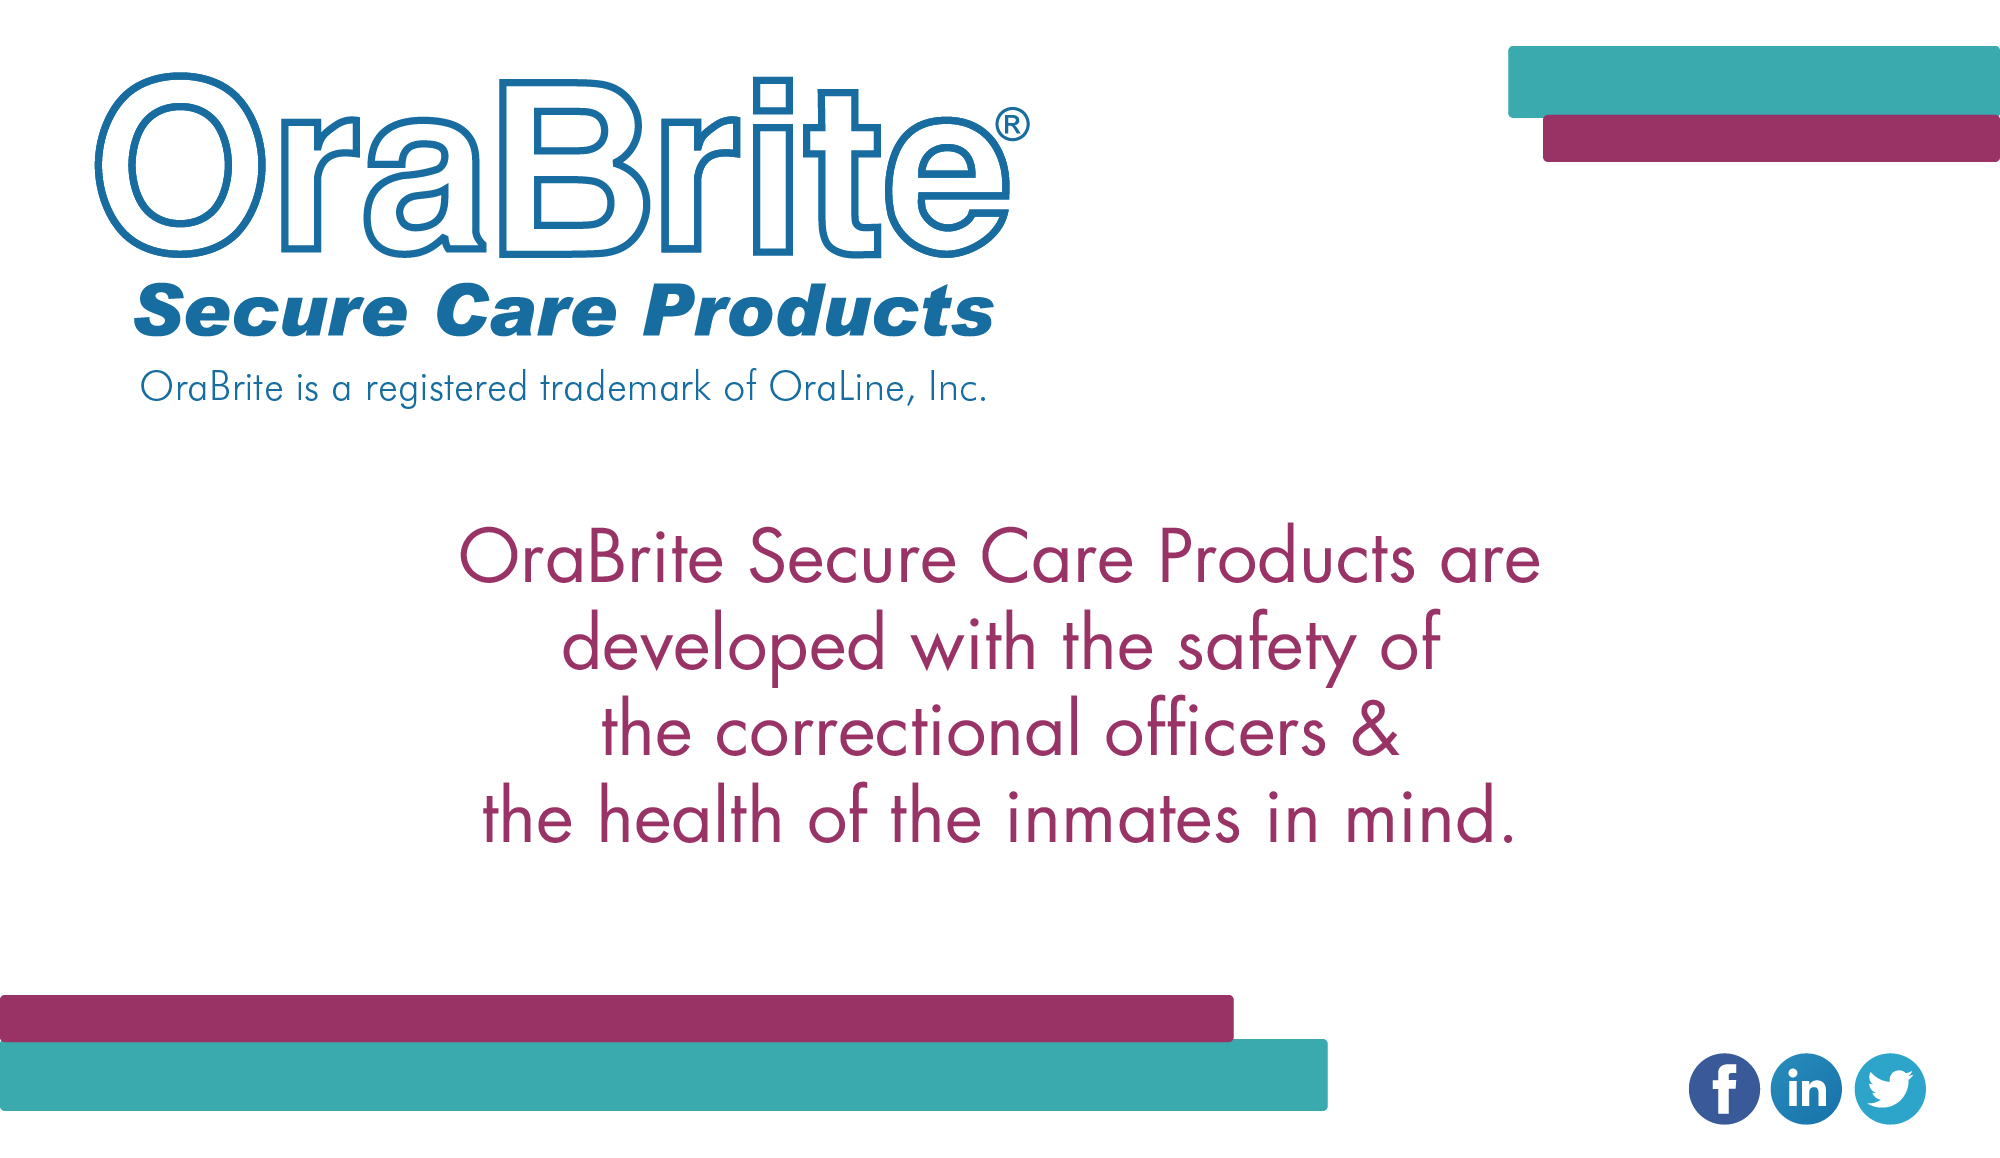 Safety of the Correctional Officers & Health of the Inmates